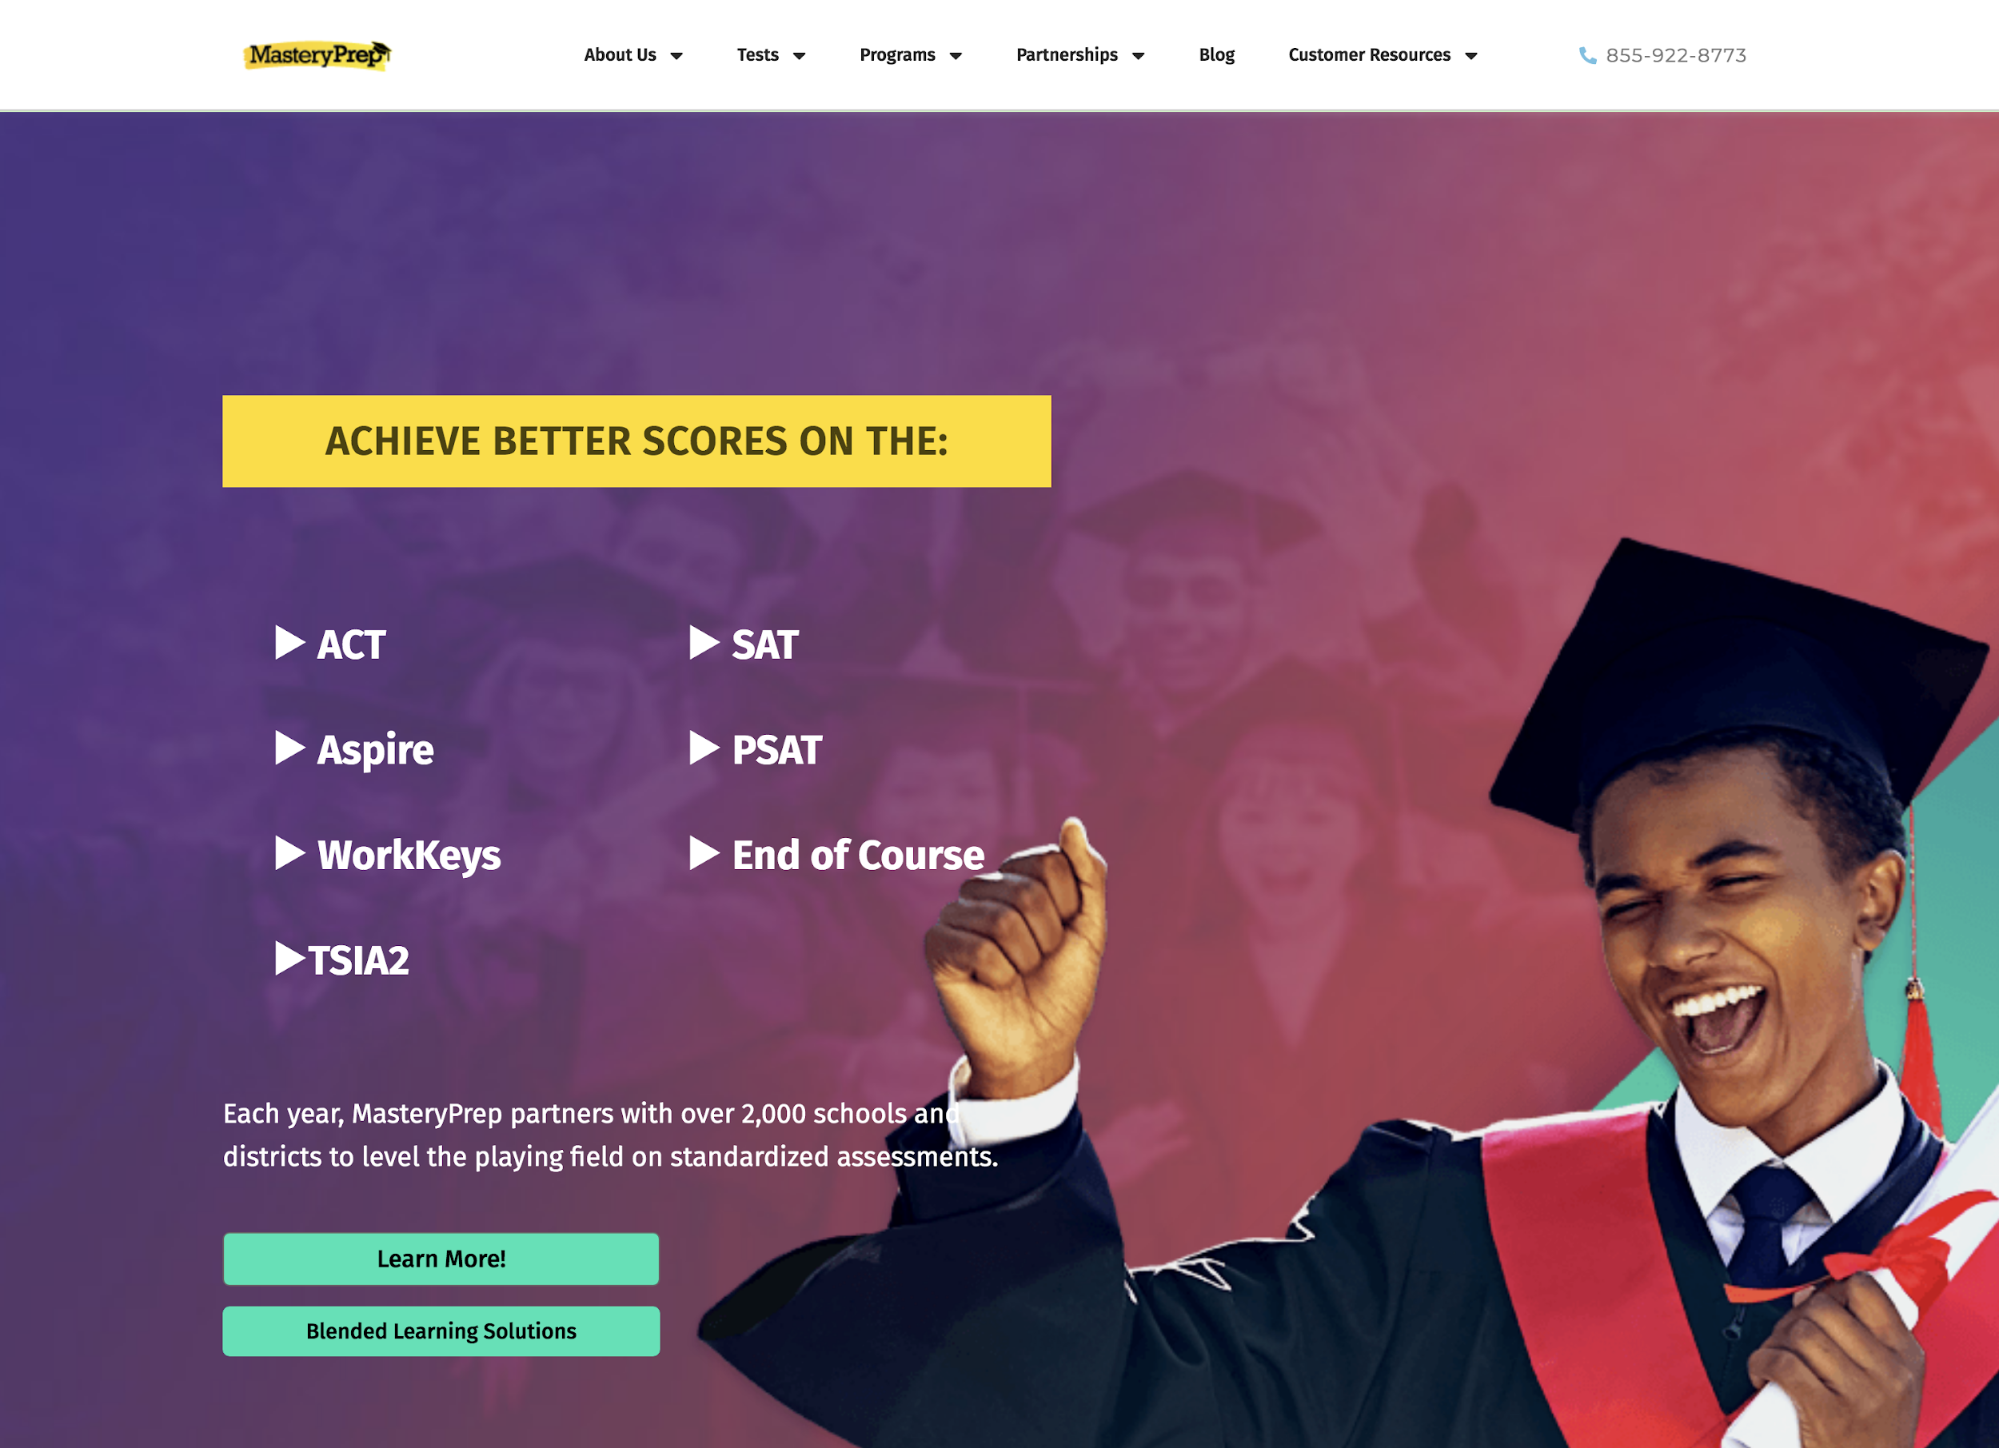 MasteryPrep offers practice tests, online teaching, and in-person prep classes